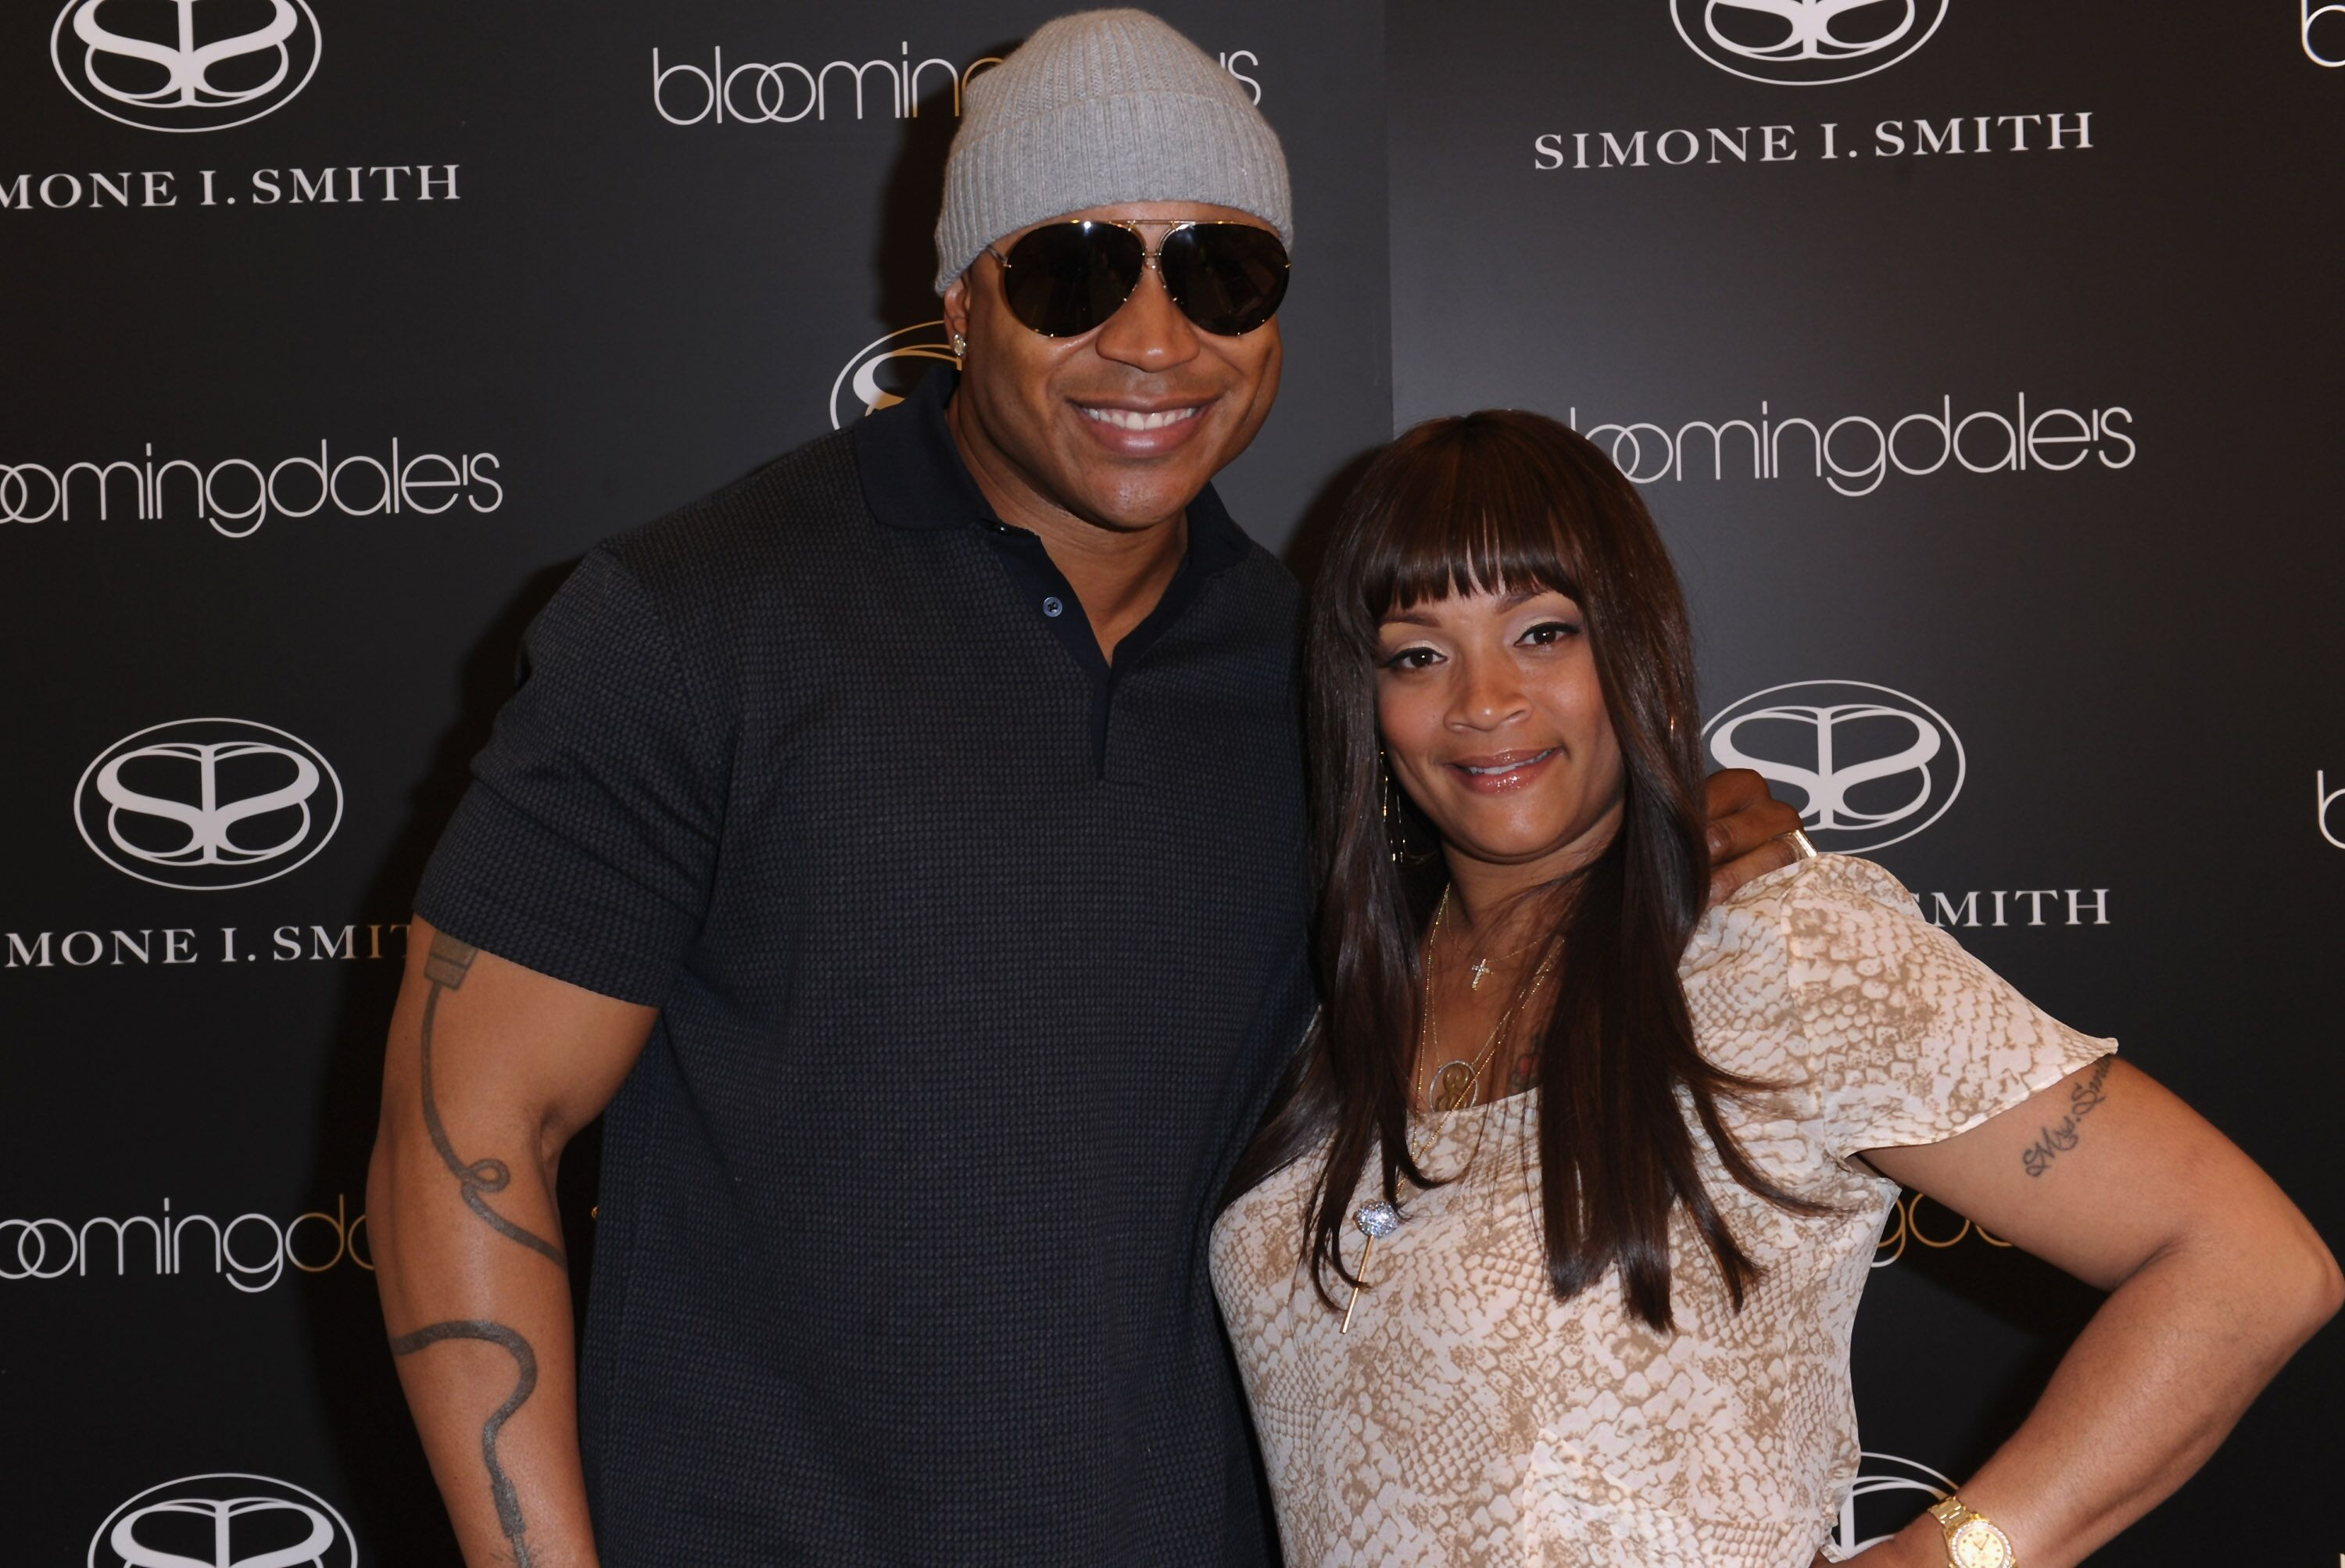 LL Cool J and designer Simone I. Smith at a personal appearance at Bloomingdale's in California in 2011 | Source: Getty Images